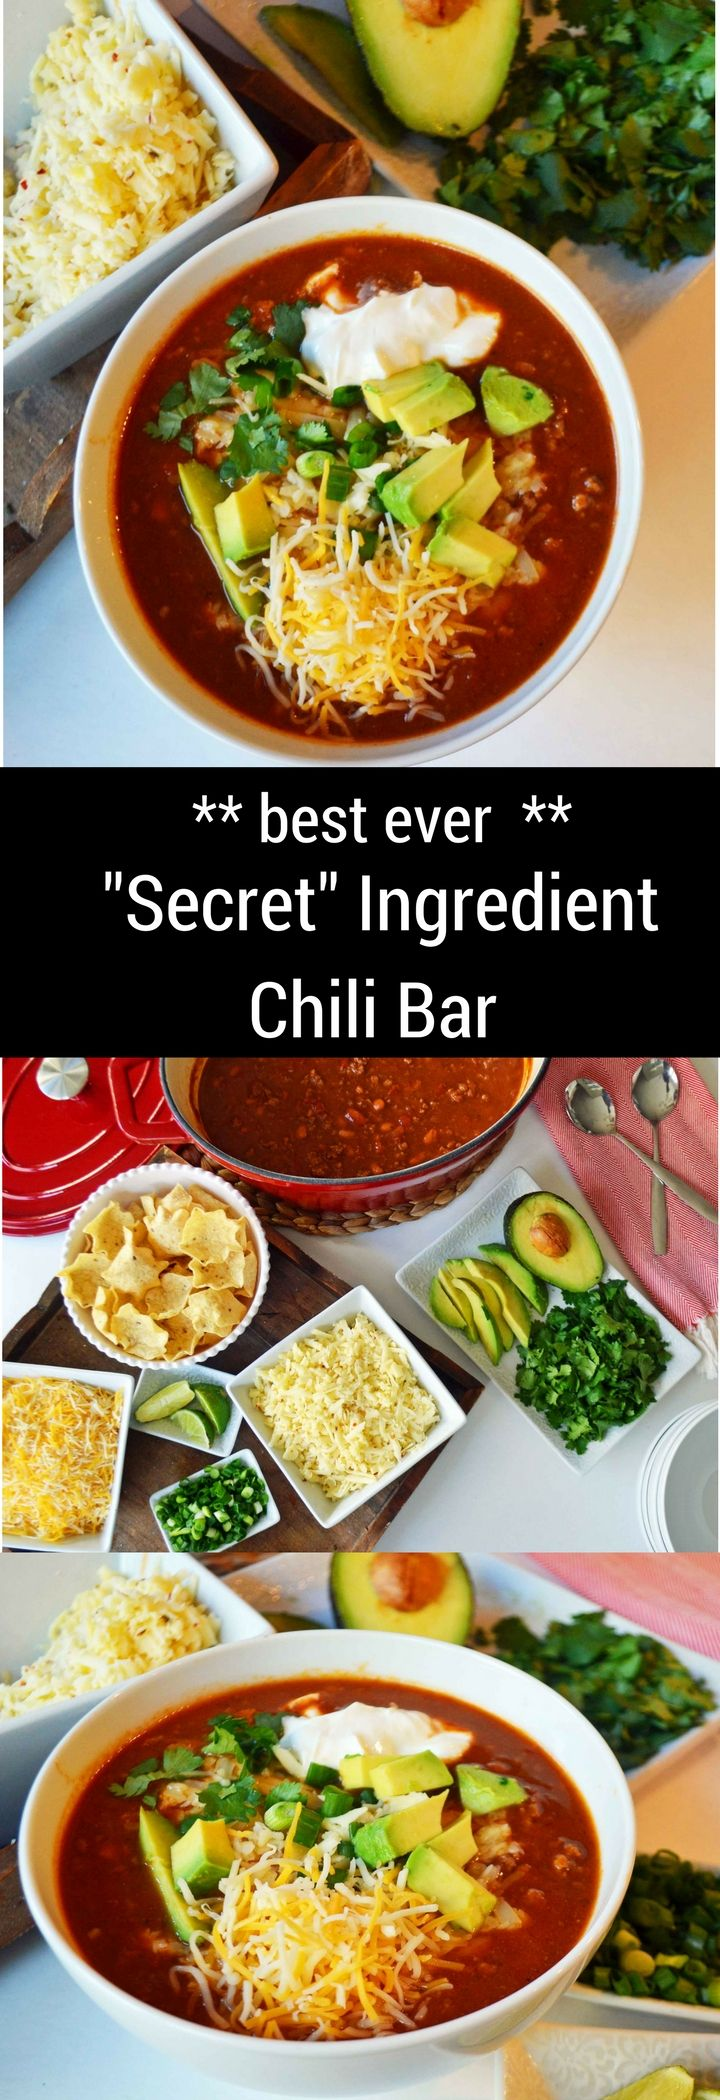 Award Winning Chili Recipe with TWO secret ingredients that make all the difference. It's easy to make and can even be made ahead of time and freezes so well. It's the recipe you need to win your next